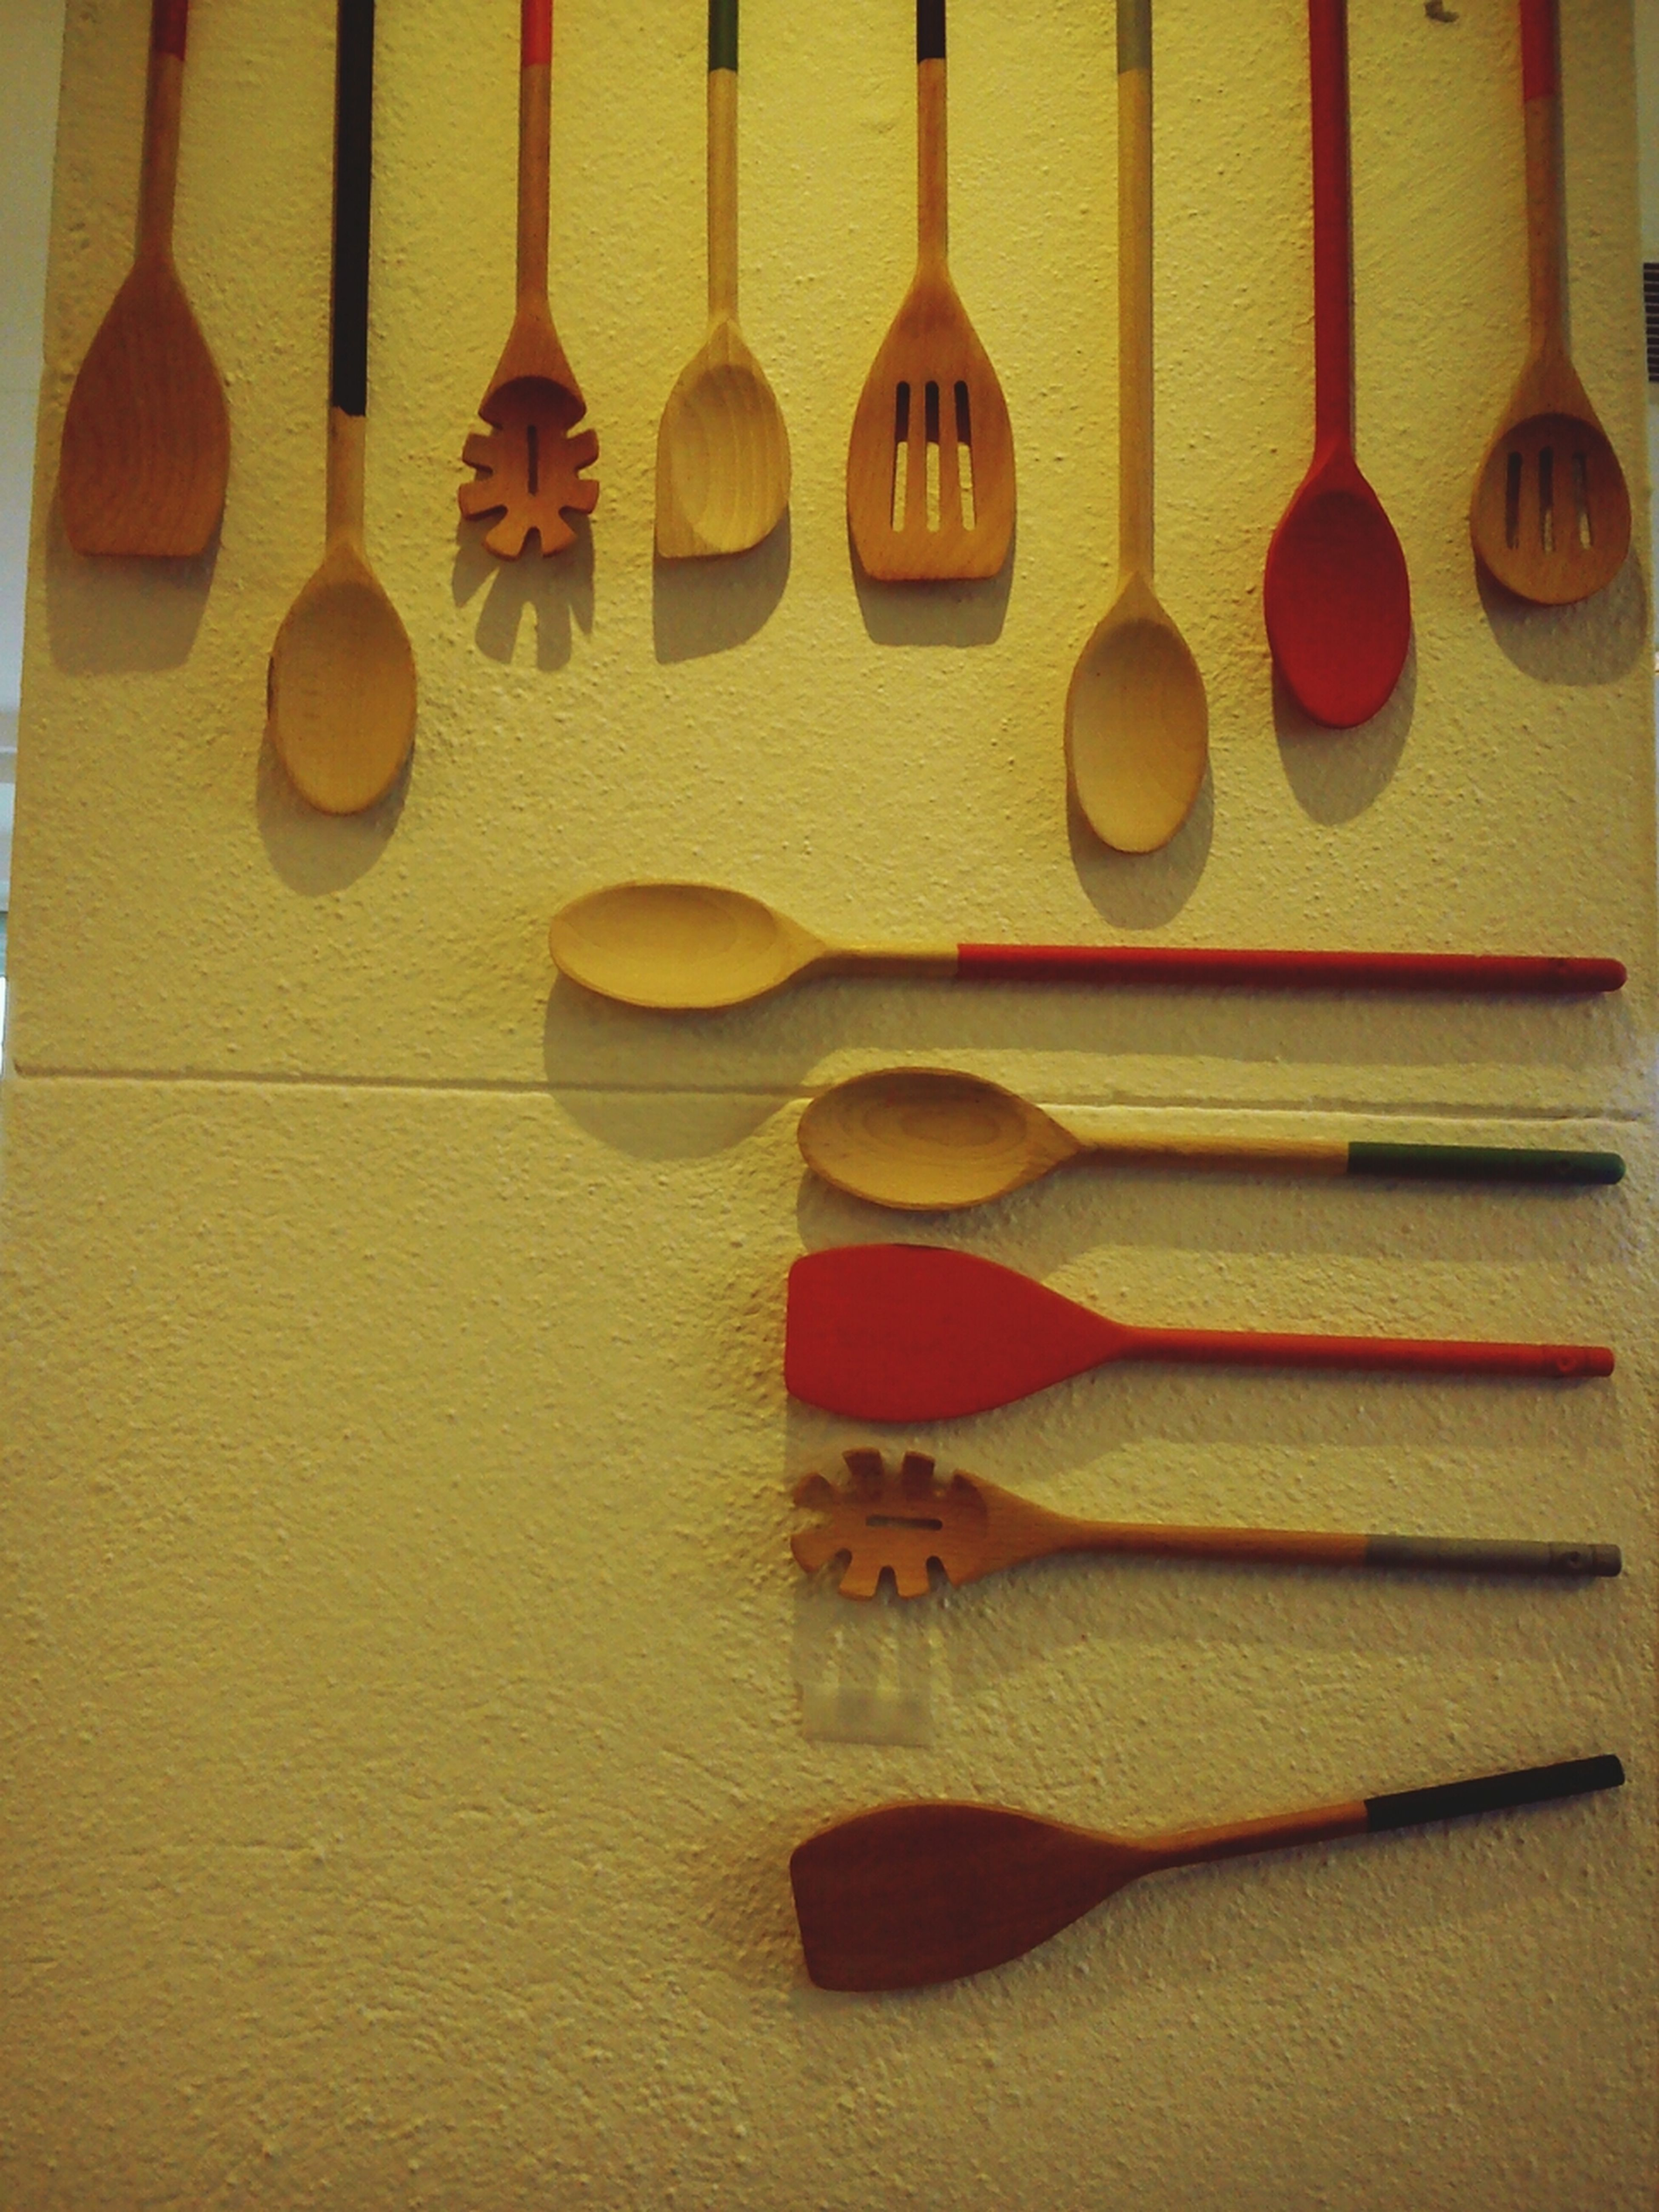 On the of the restaurant at Selfridged Kitchen Utensils Things Organized Neatly